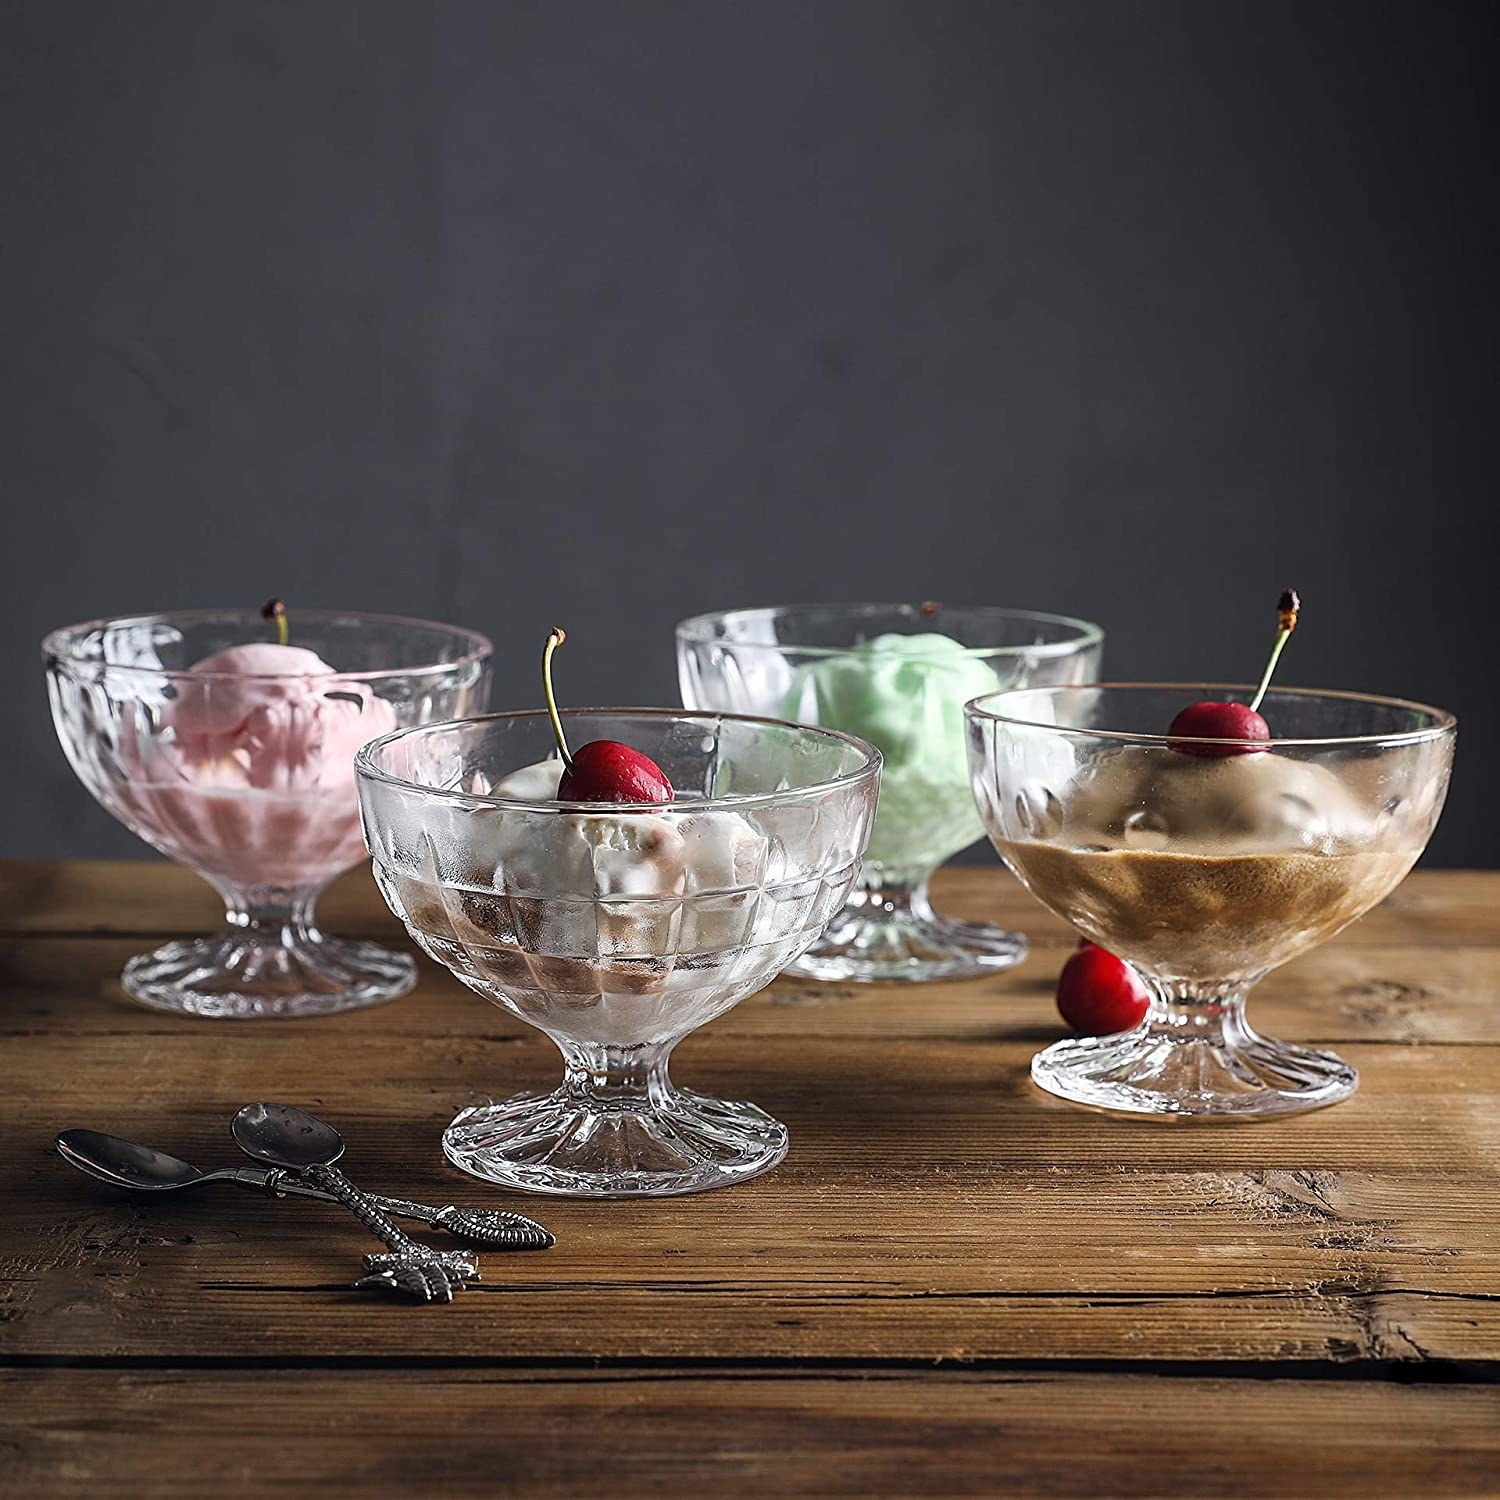 Four small glass ice cream cups with small stems that have different patterns etched into their glass